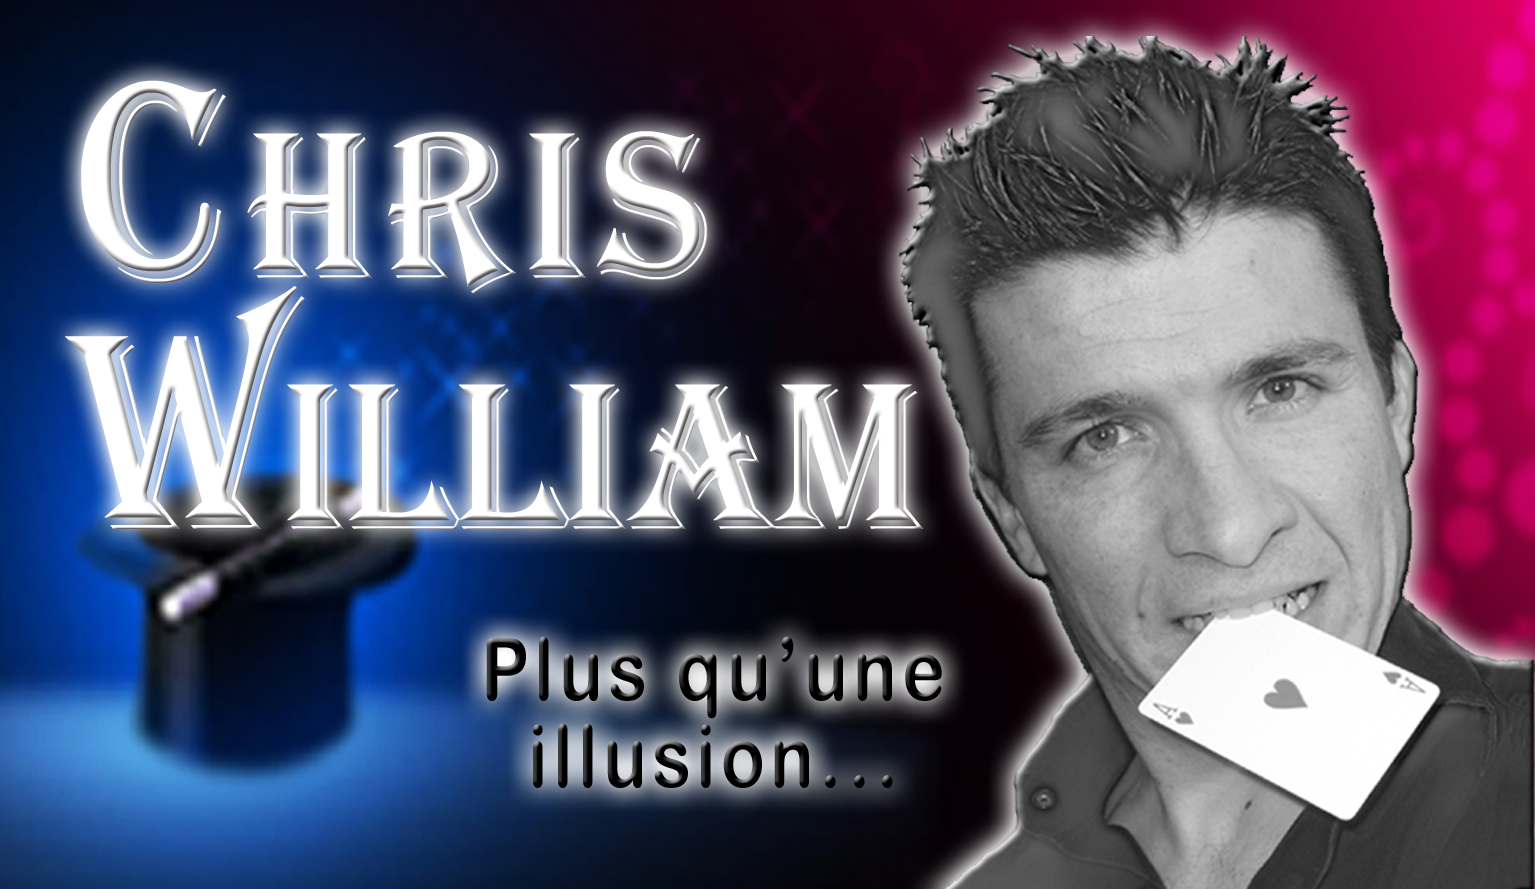 Carte Postale ChrisWilliam sans contact